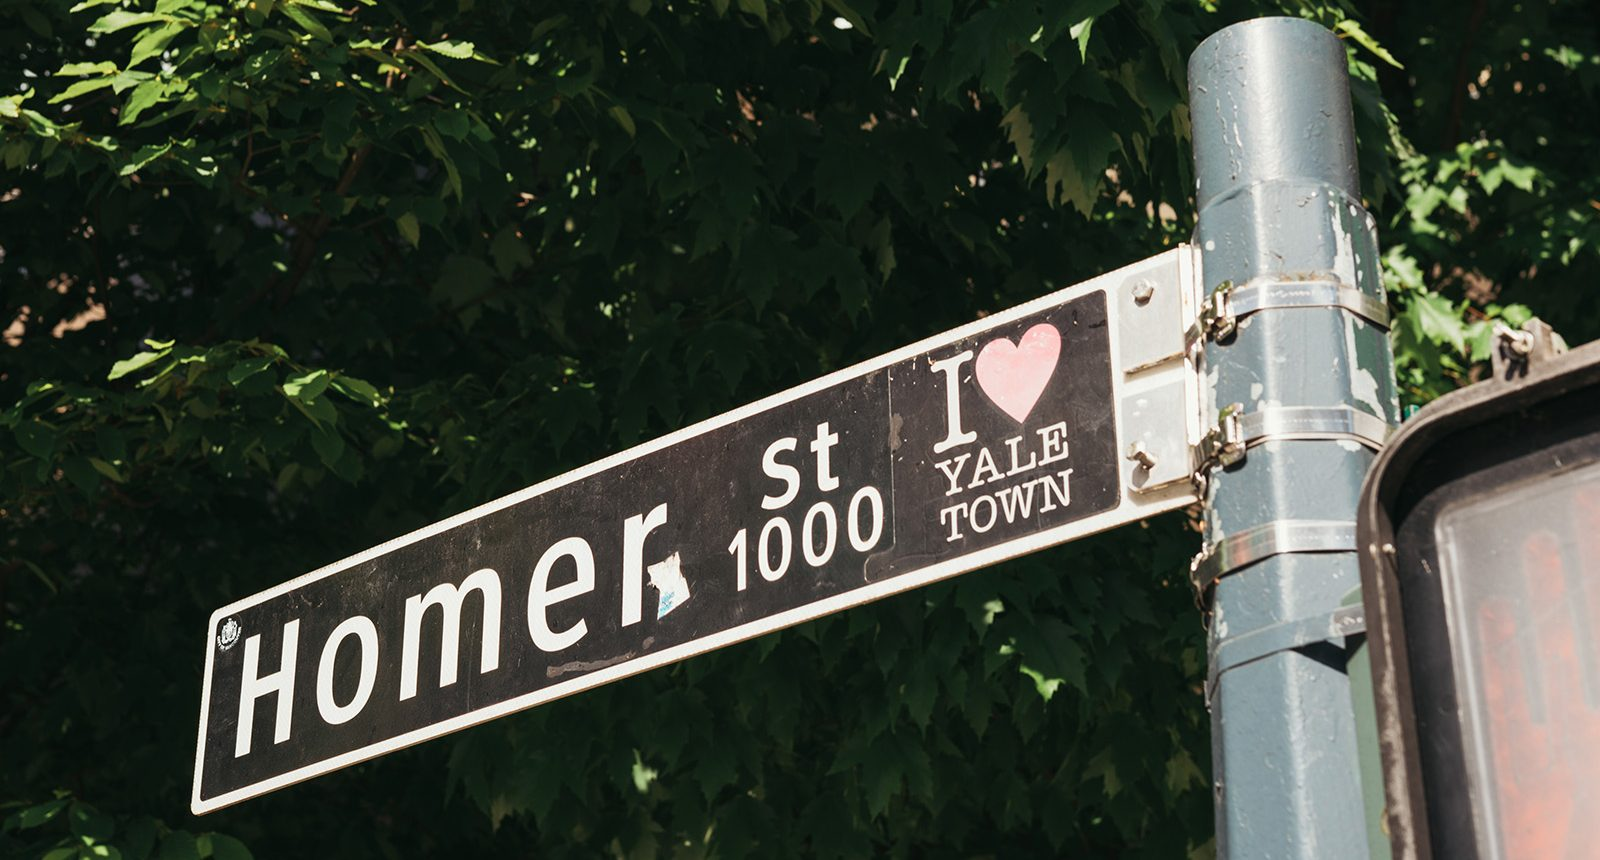 Homer street sign in Yaletown